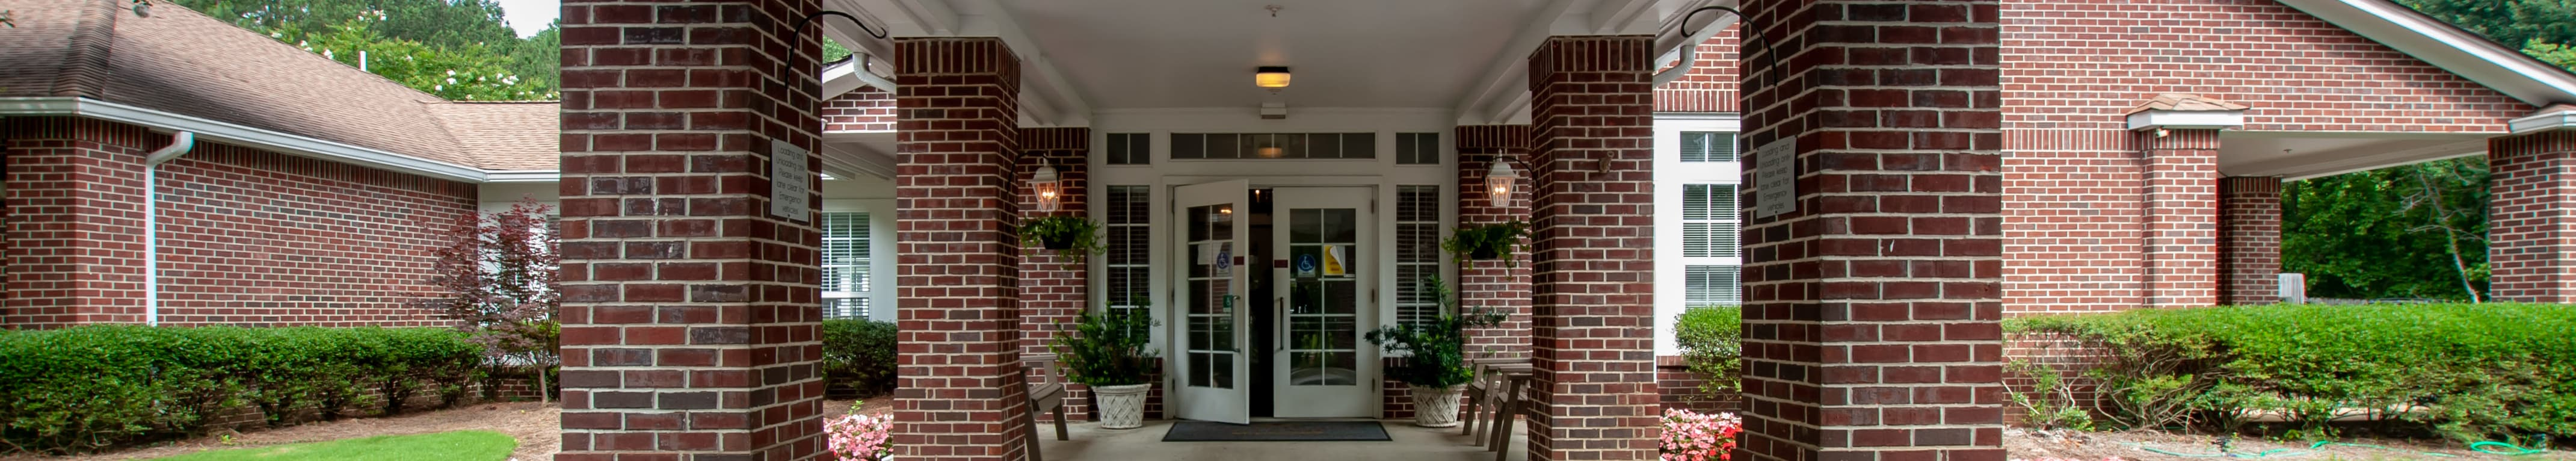 Senior living options at the senior living community in Hoover